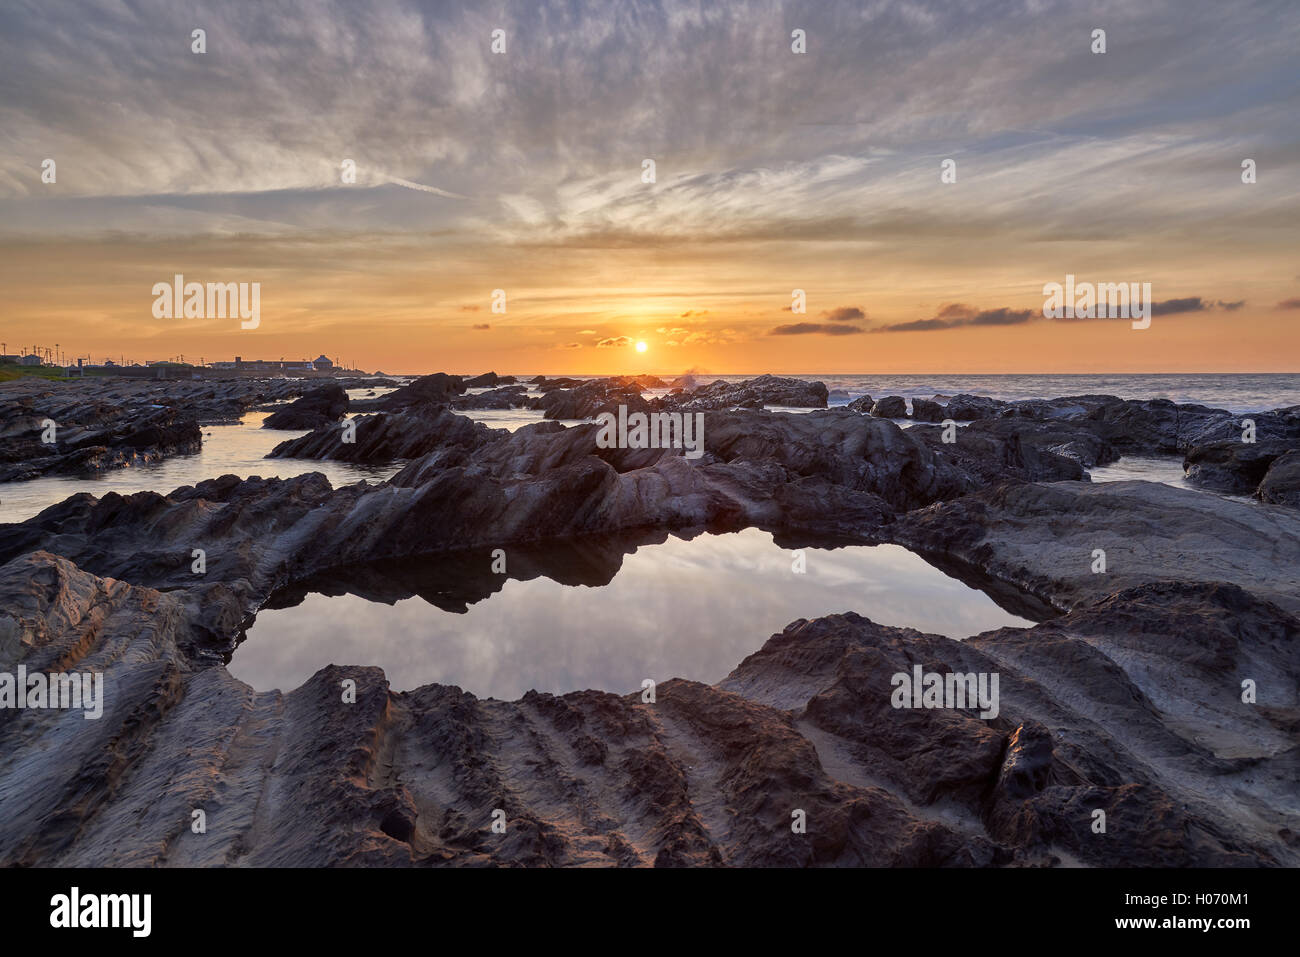 Sunrise light hitting sea rocks by the beach in the morning in Minamiboso, Chiba Prefecture, Japan Stock Photo